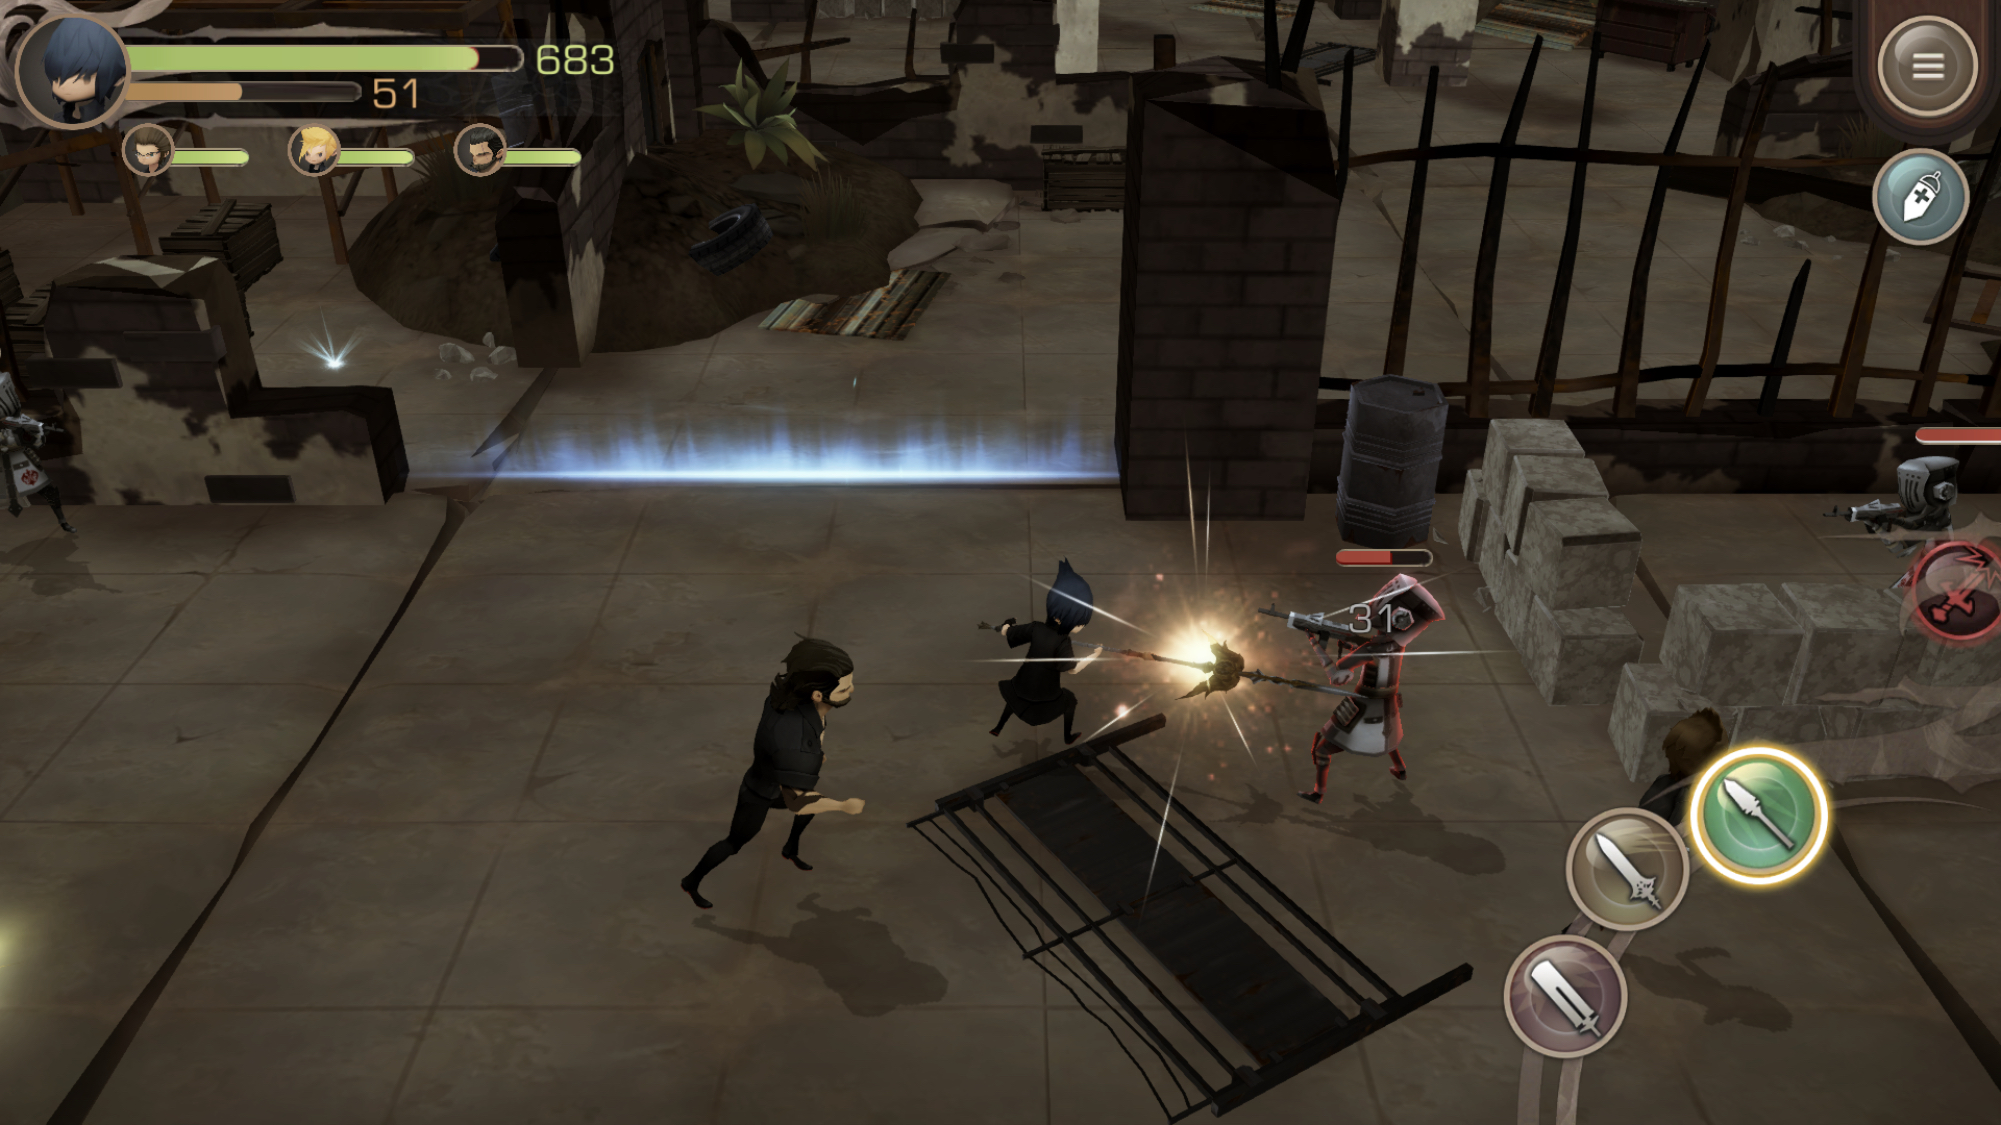 Final Fantasy XV: Pocket Edition is a great mobile